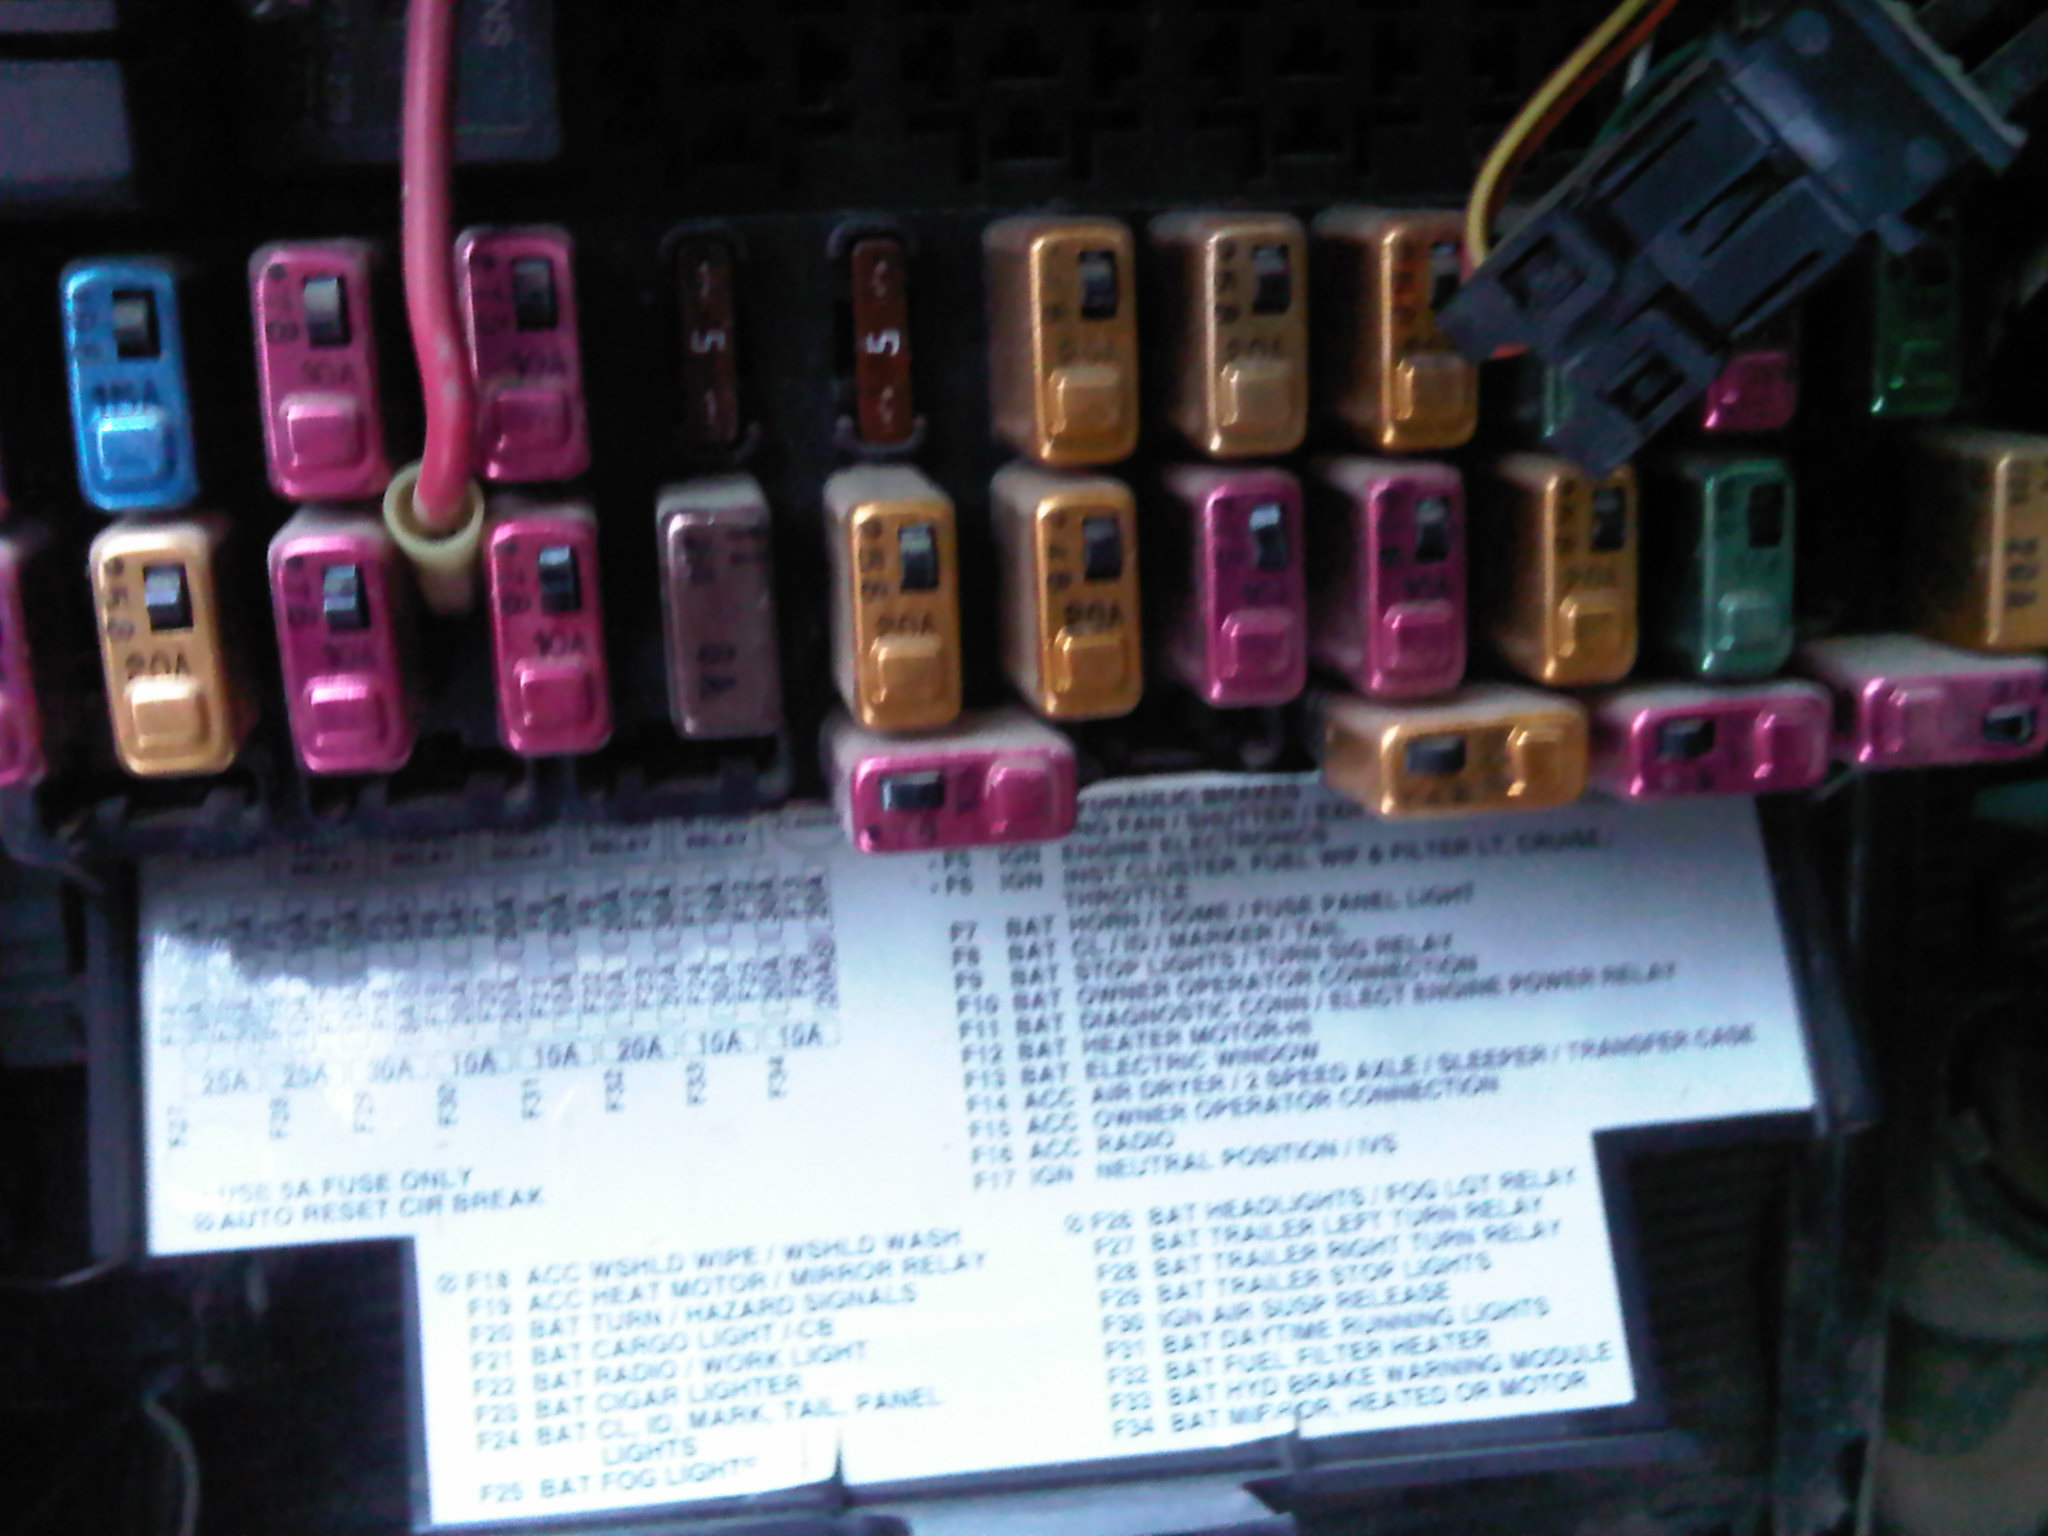 1999 international fuse box wiring diagram - 5 0 engine swap wiring harness  s43-enginediagrams.au-delice-limousin.fr  bege place wiring diagram